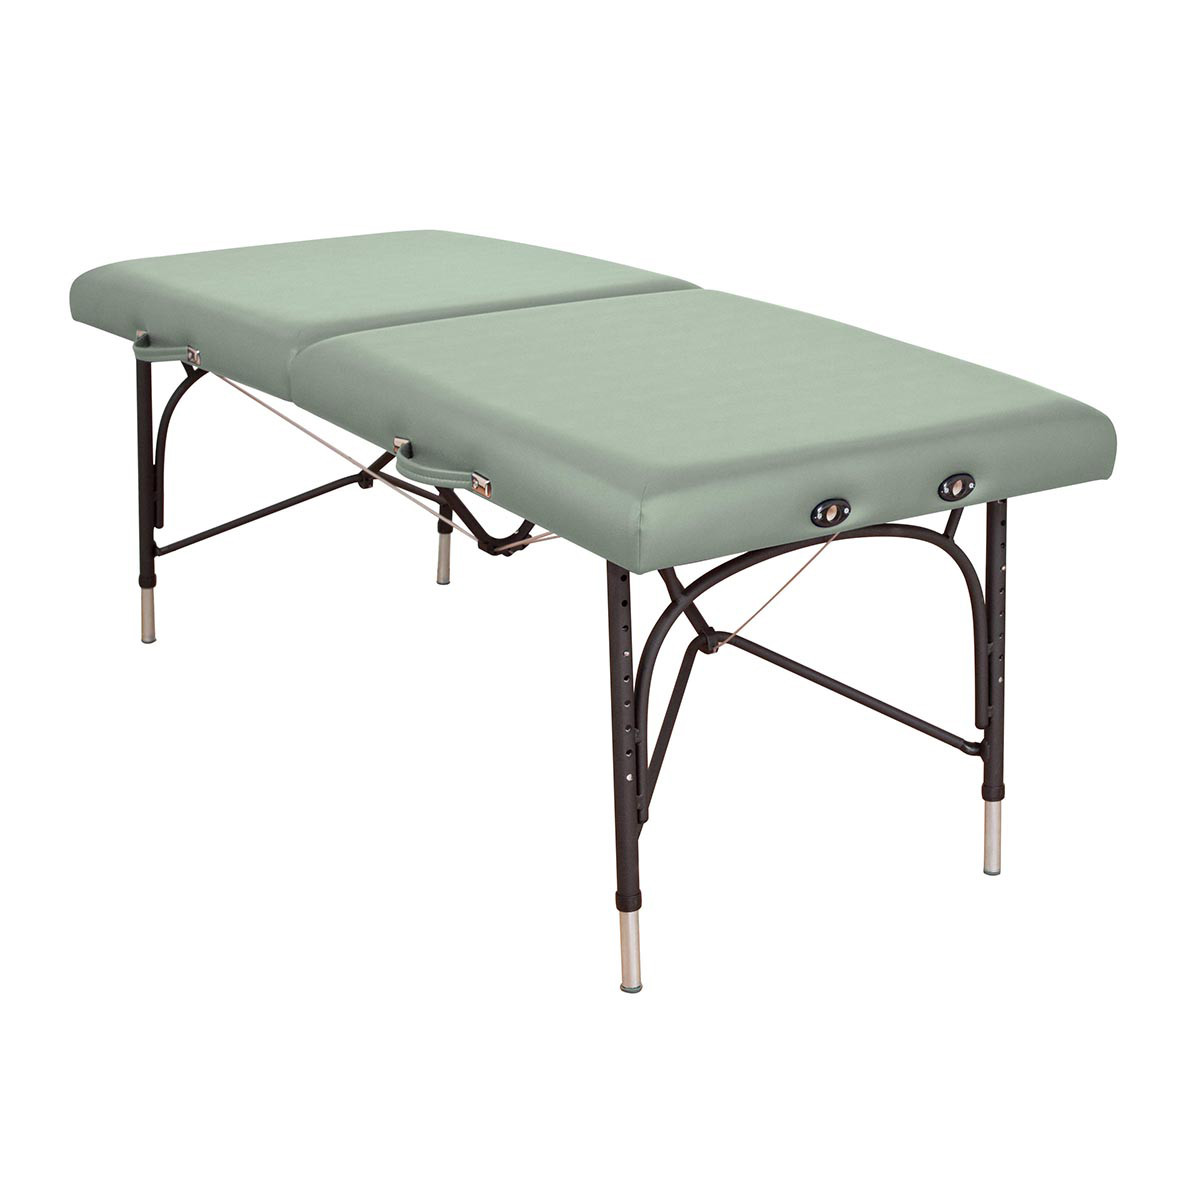 buy oakworks wellspring massage table rh massageworld com oakworks massage table wellspring oakworks massage table electric